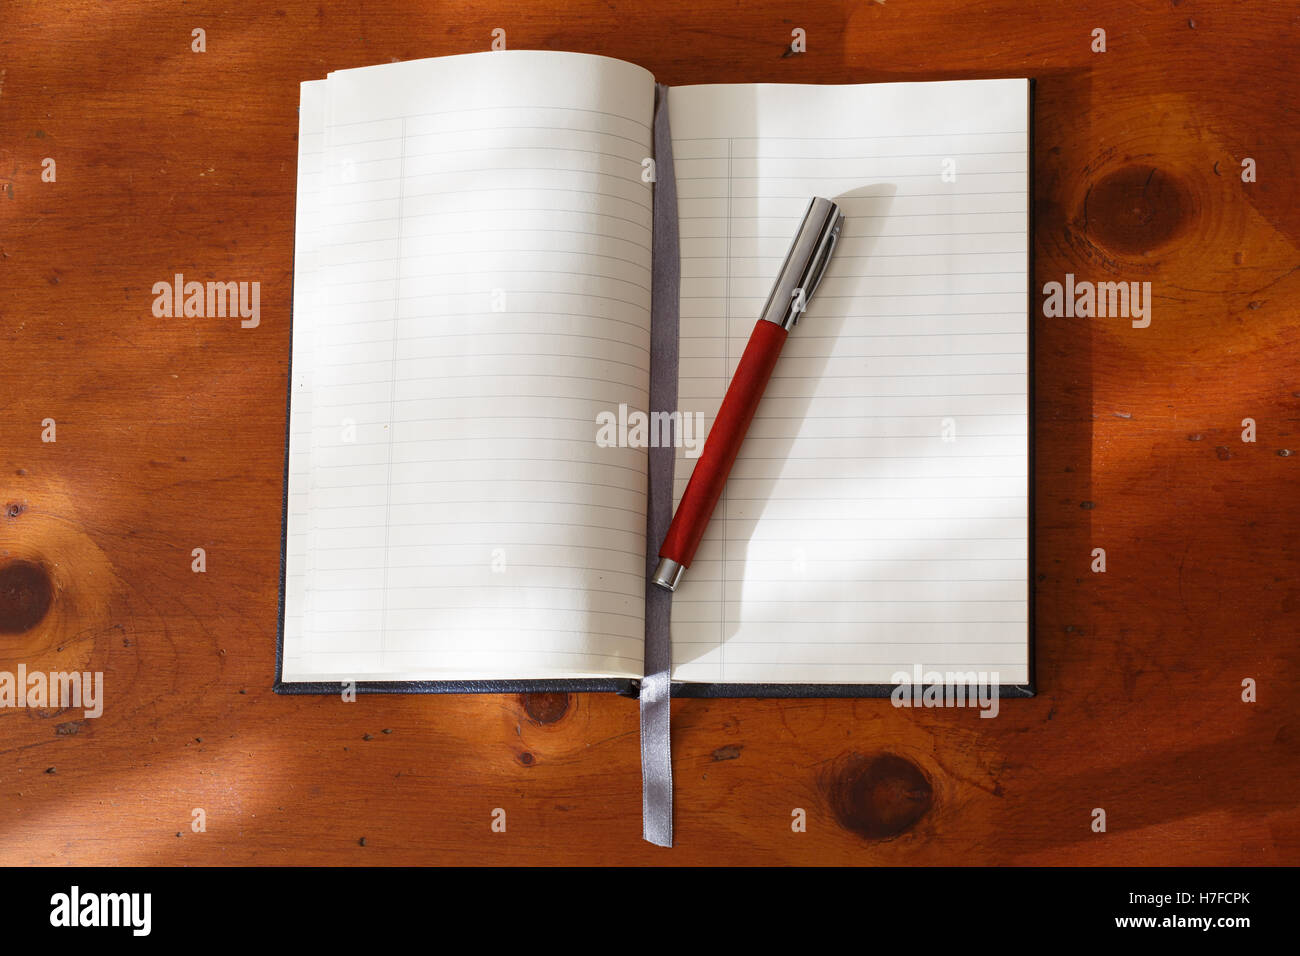 Open blank journal with fountain pen on a wooden desk. - Stock Image